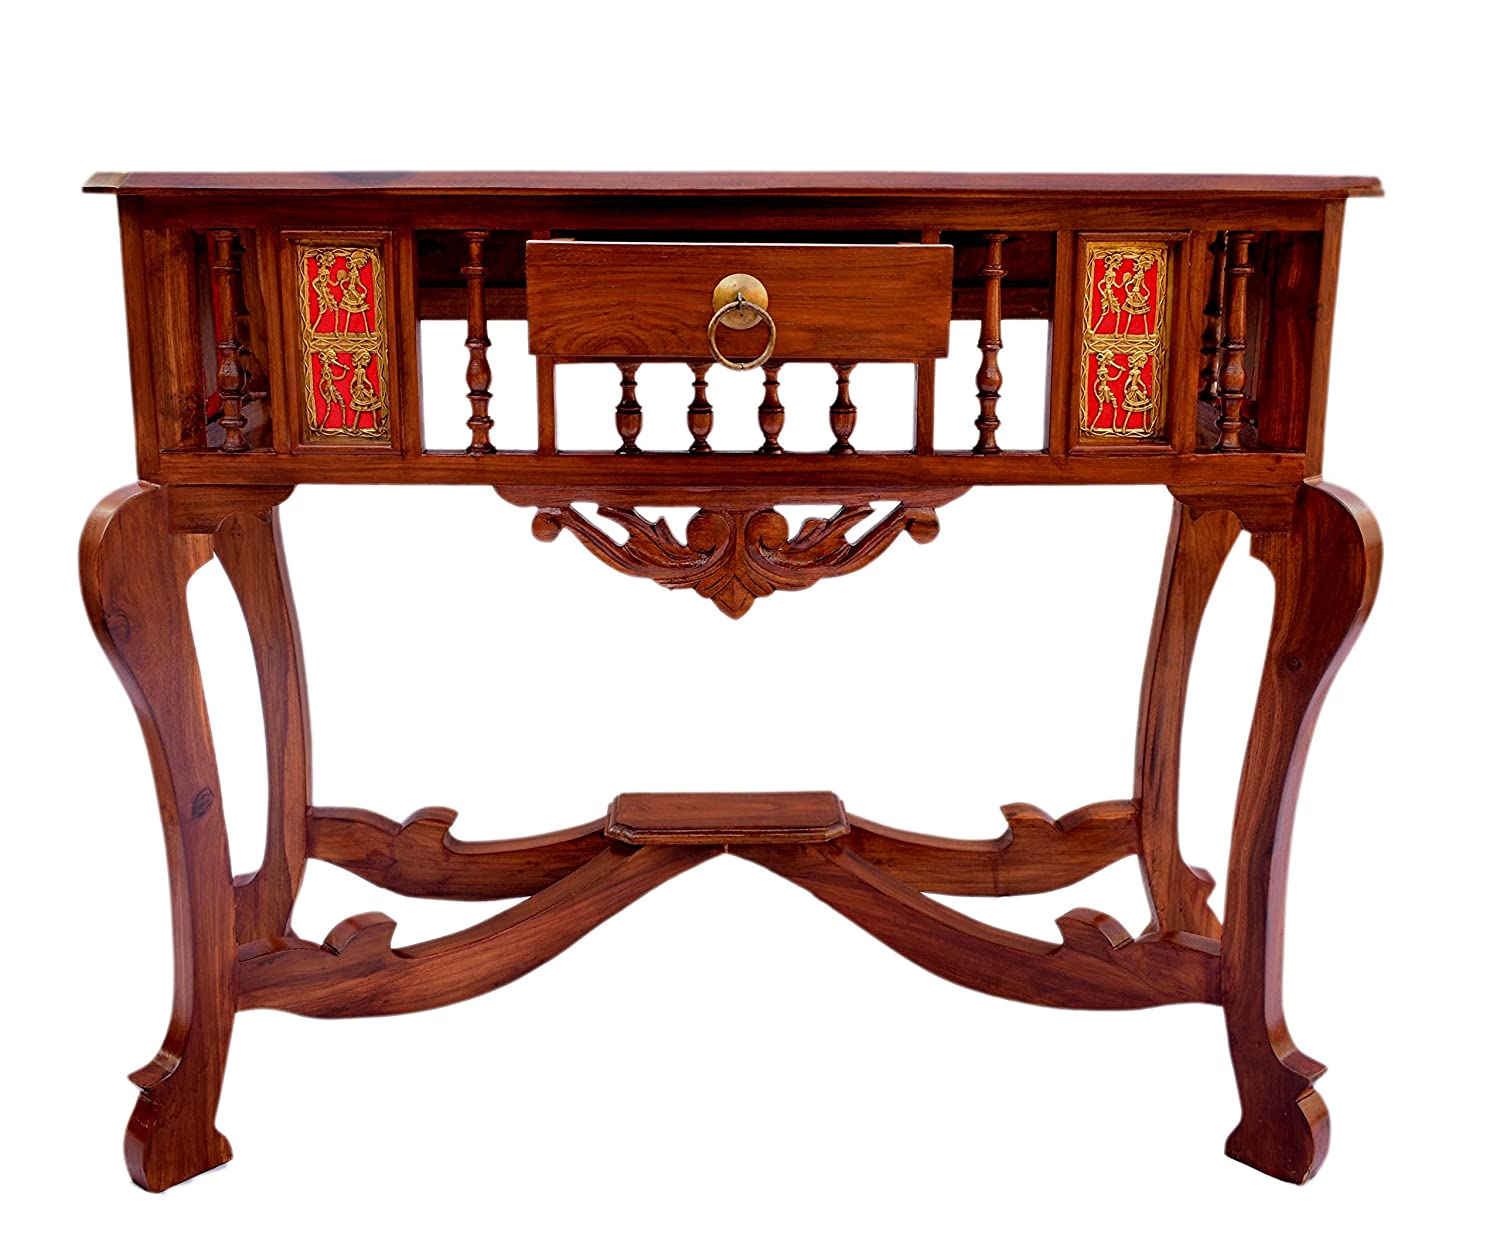 Solid Teak Wood Antique Look Console Table with Beautiful Brass Dhokra and Warli Art : 30x36x15 (HxWxD)